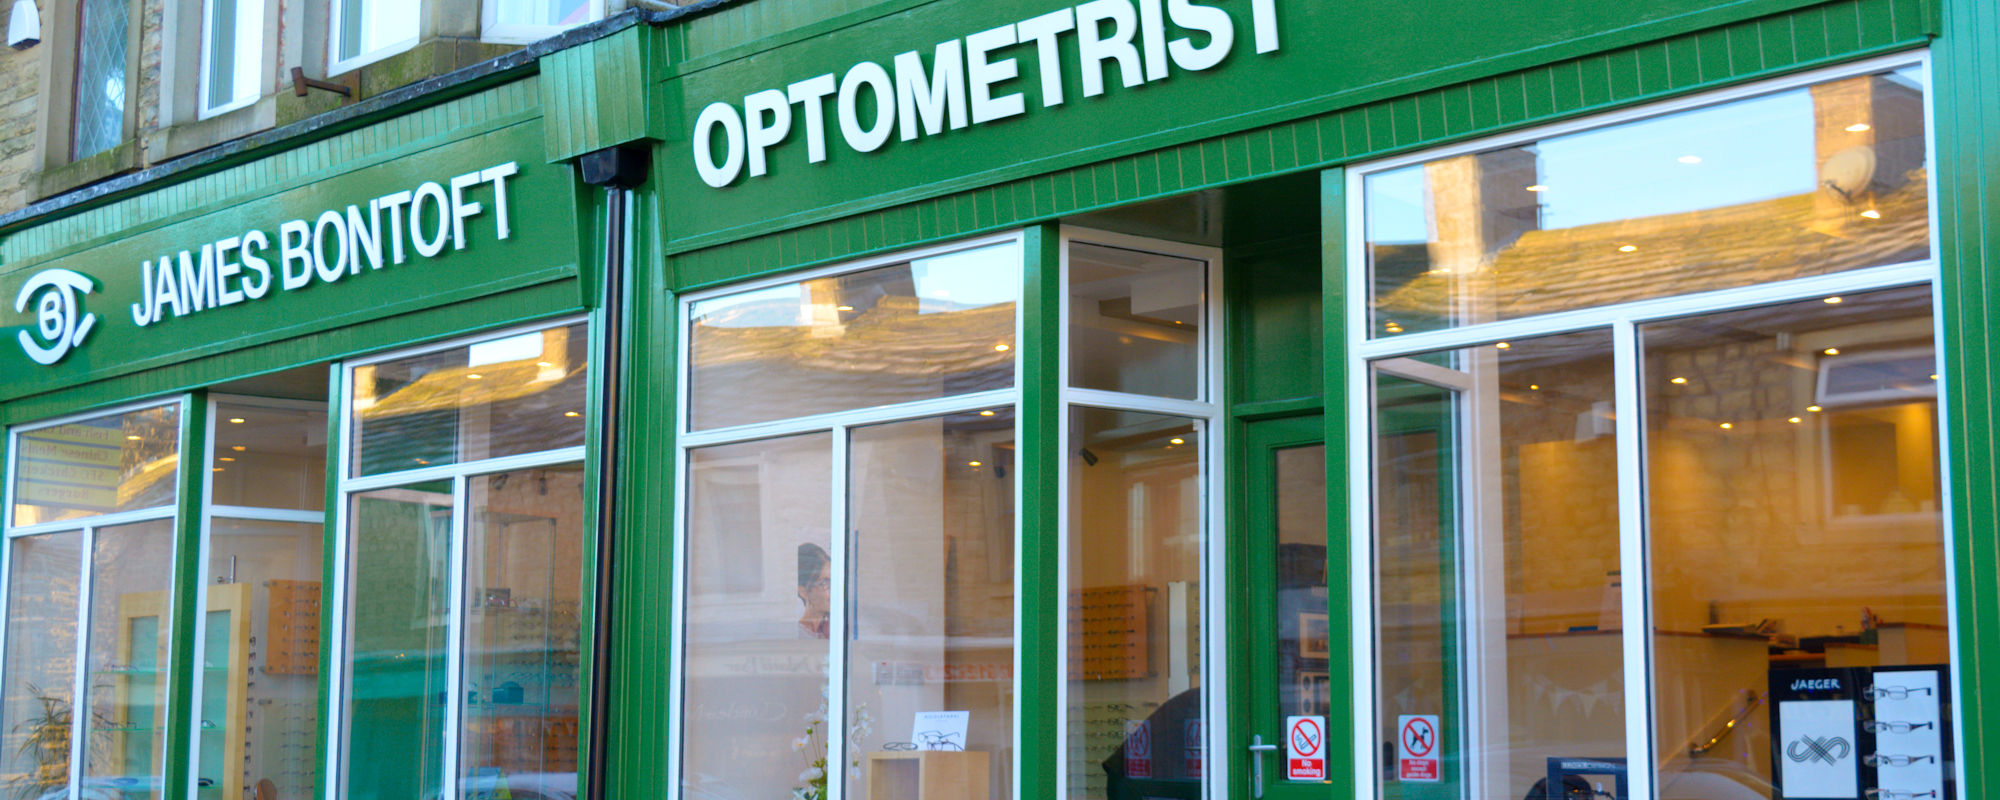 Thornton-in-Craven's local optician - James Bontoft in Barnoldswick